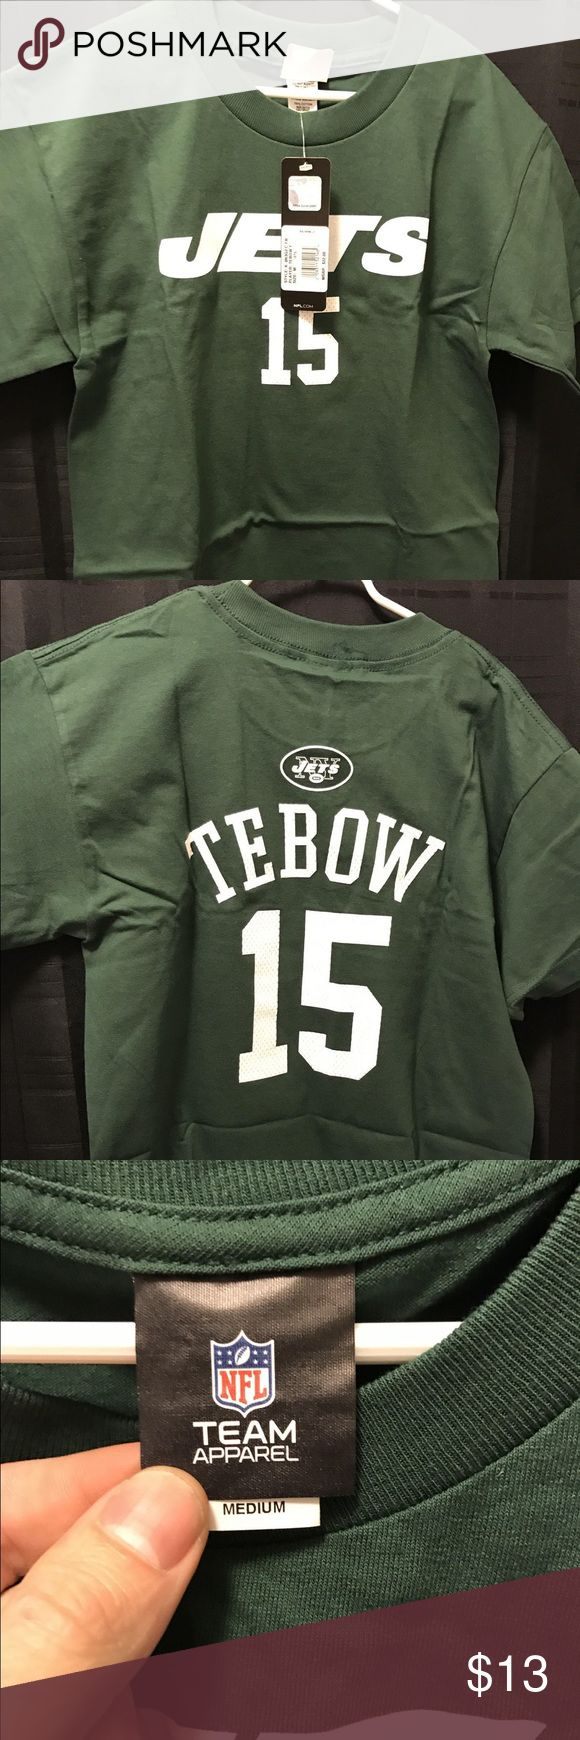 NFL apparel ny jets tim tebow tee shirt new w/tags This shirt is new with tags nfl apparel Shirts & Tops Tees - Short Sleeve